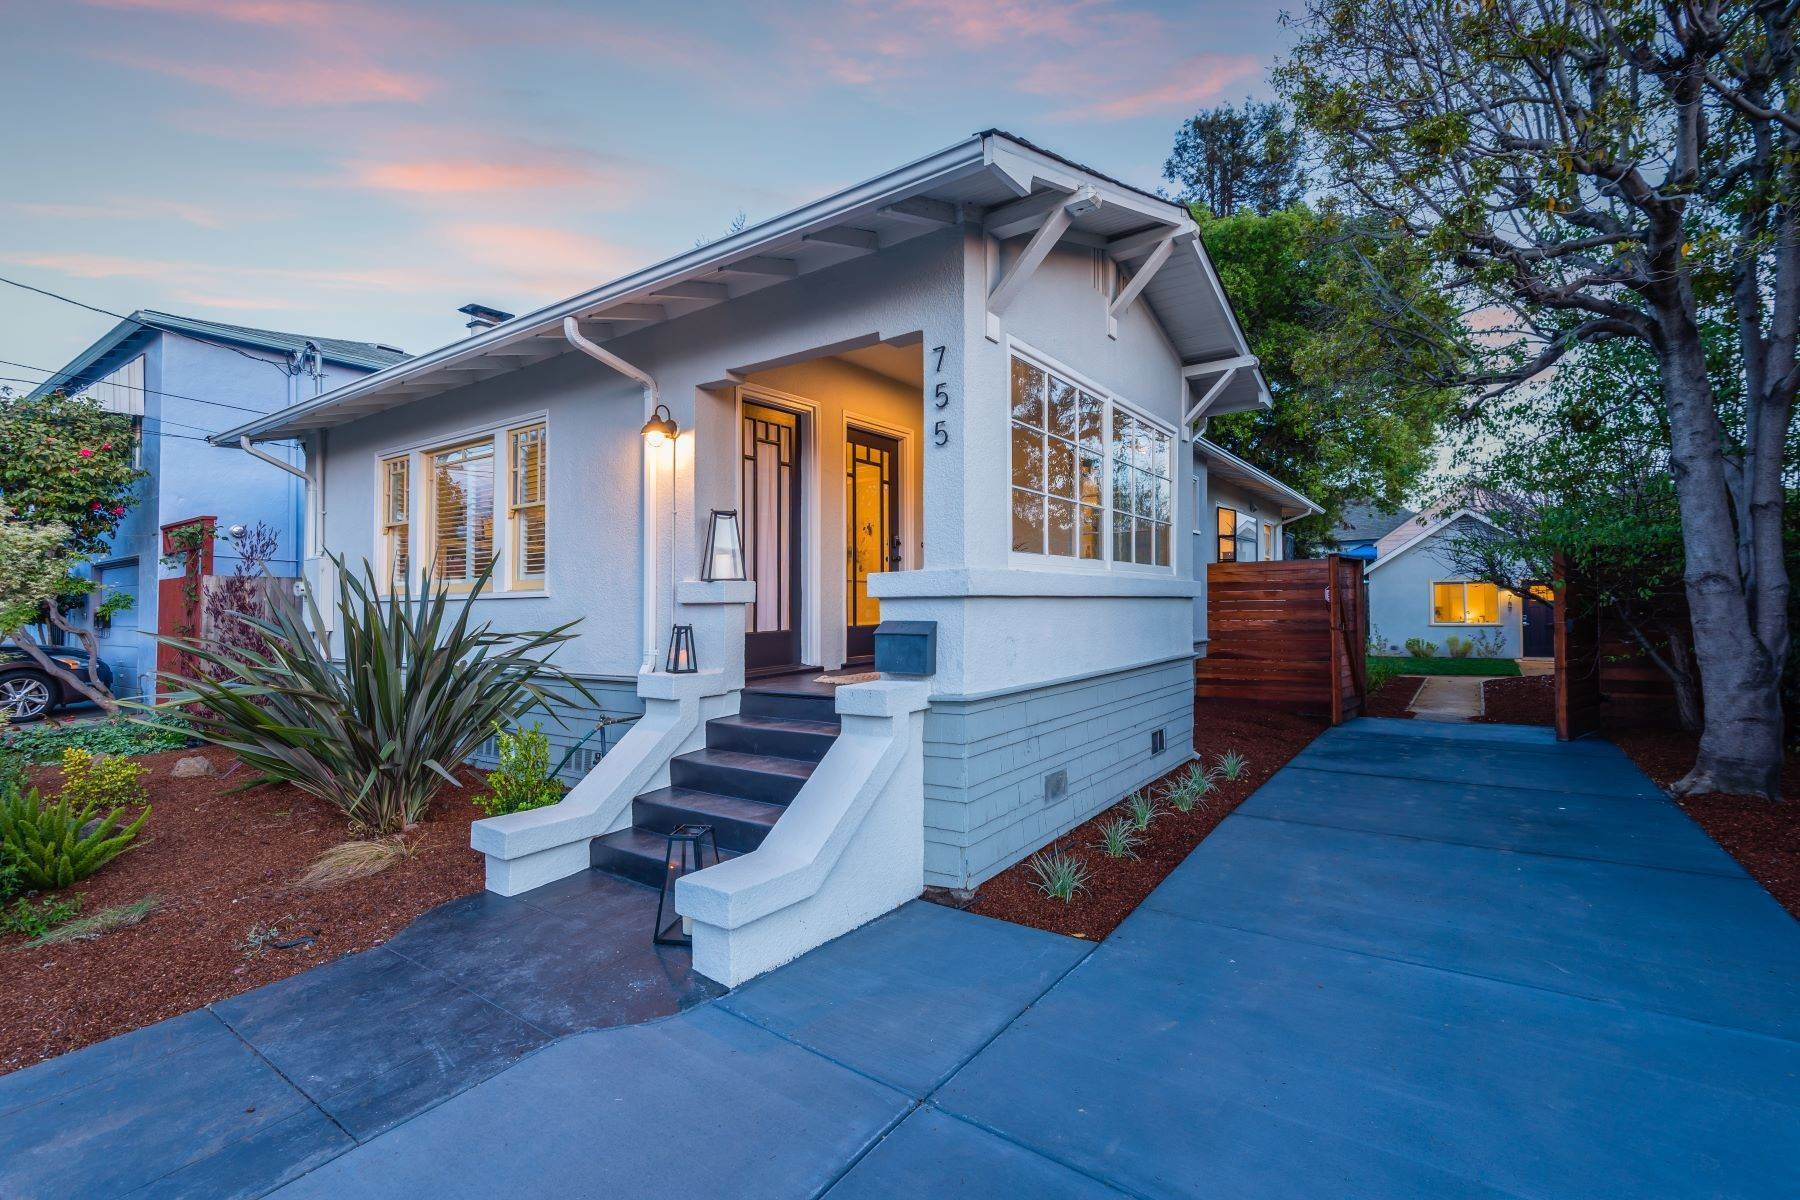 Single Family Homes for Sale at Charming Mini Compound in NOBE 755 65th Street Oakland, California 94609 United States